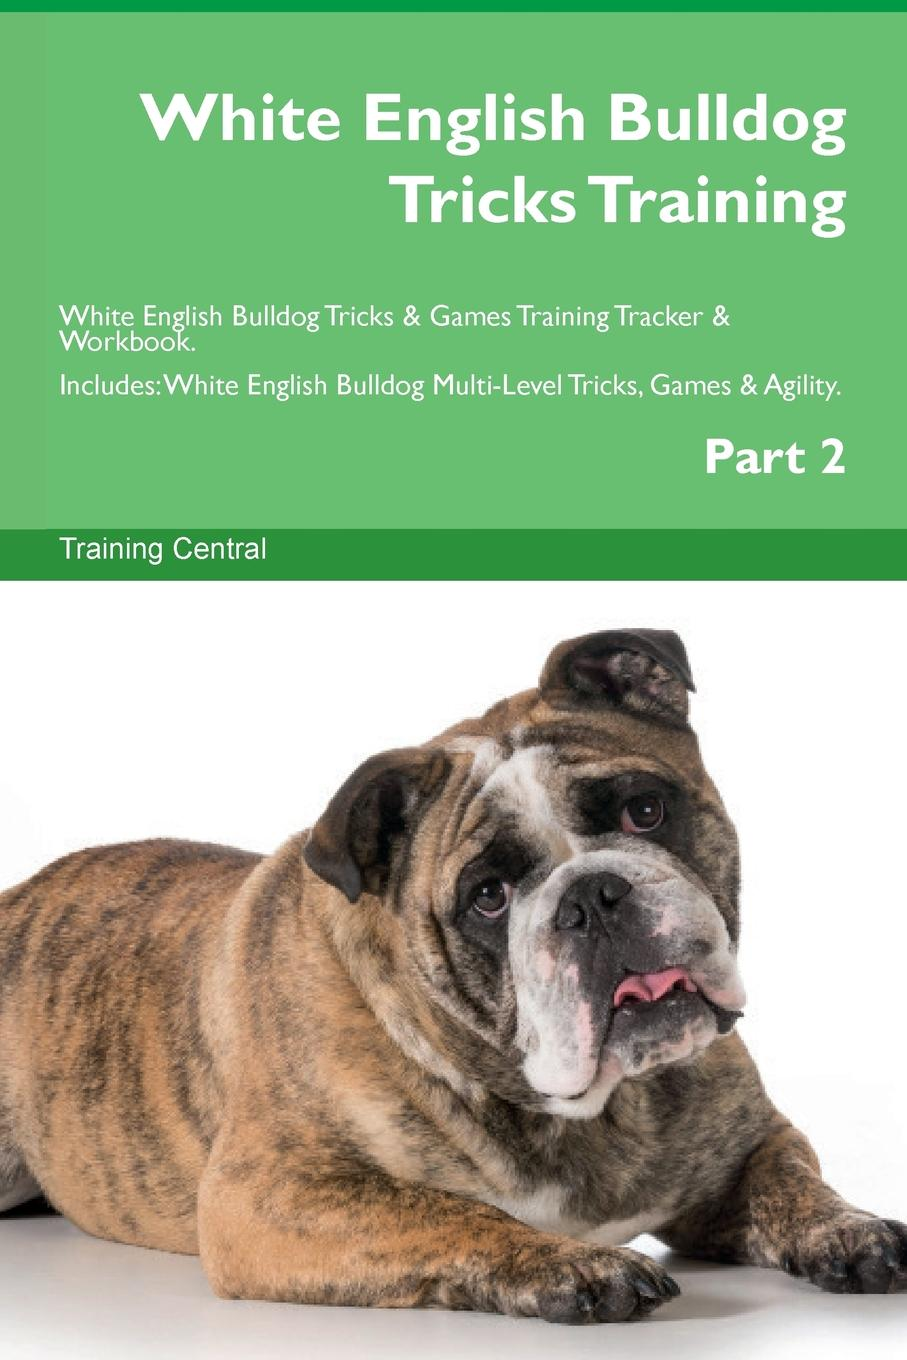 Training Central White English Bulldog Tricks Training White English Bulldog Tricks . Games Training Tracker . Workbook. Includes. White English Bulldog Multi-Level Tricks, Games . Agility. Part 2 this book loves you